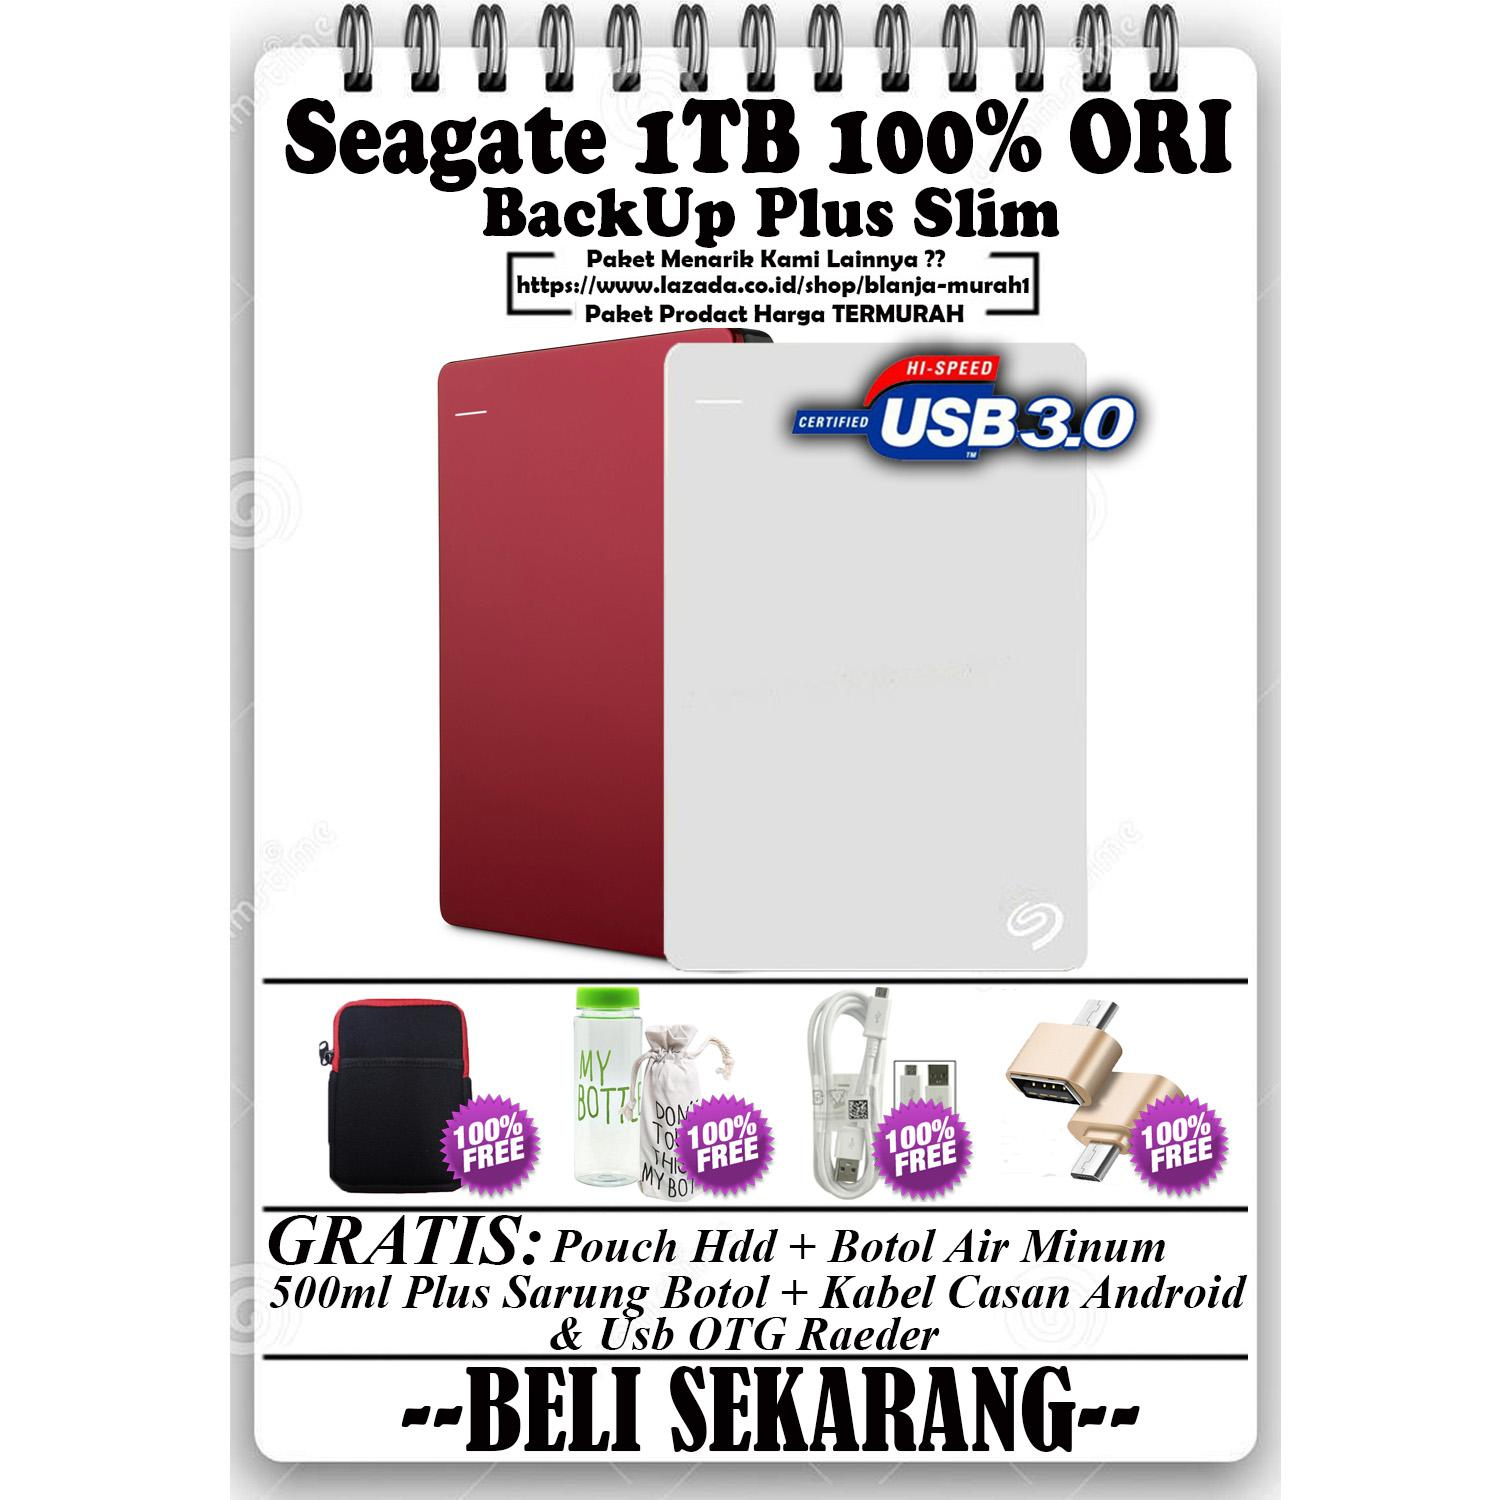 Seagate BackUp Plus Slim 1TB - HDD / HD / Hardisk External Usb 3.0 - GRATIS Pouch Harddisk + Botol Air Minum 500ml Plus Sarung Botol + Kabel Casan Android & Usb OTG Reader